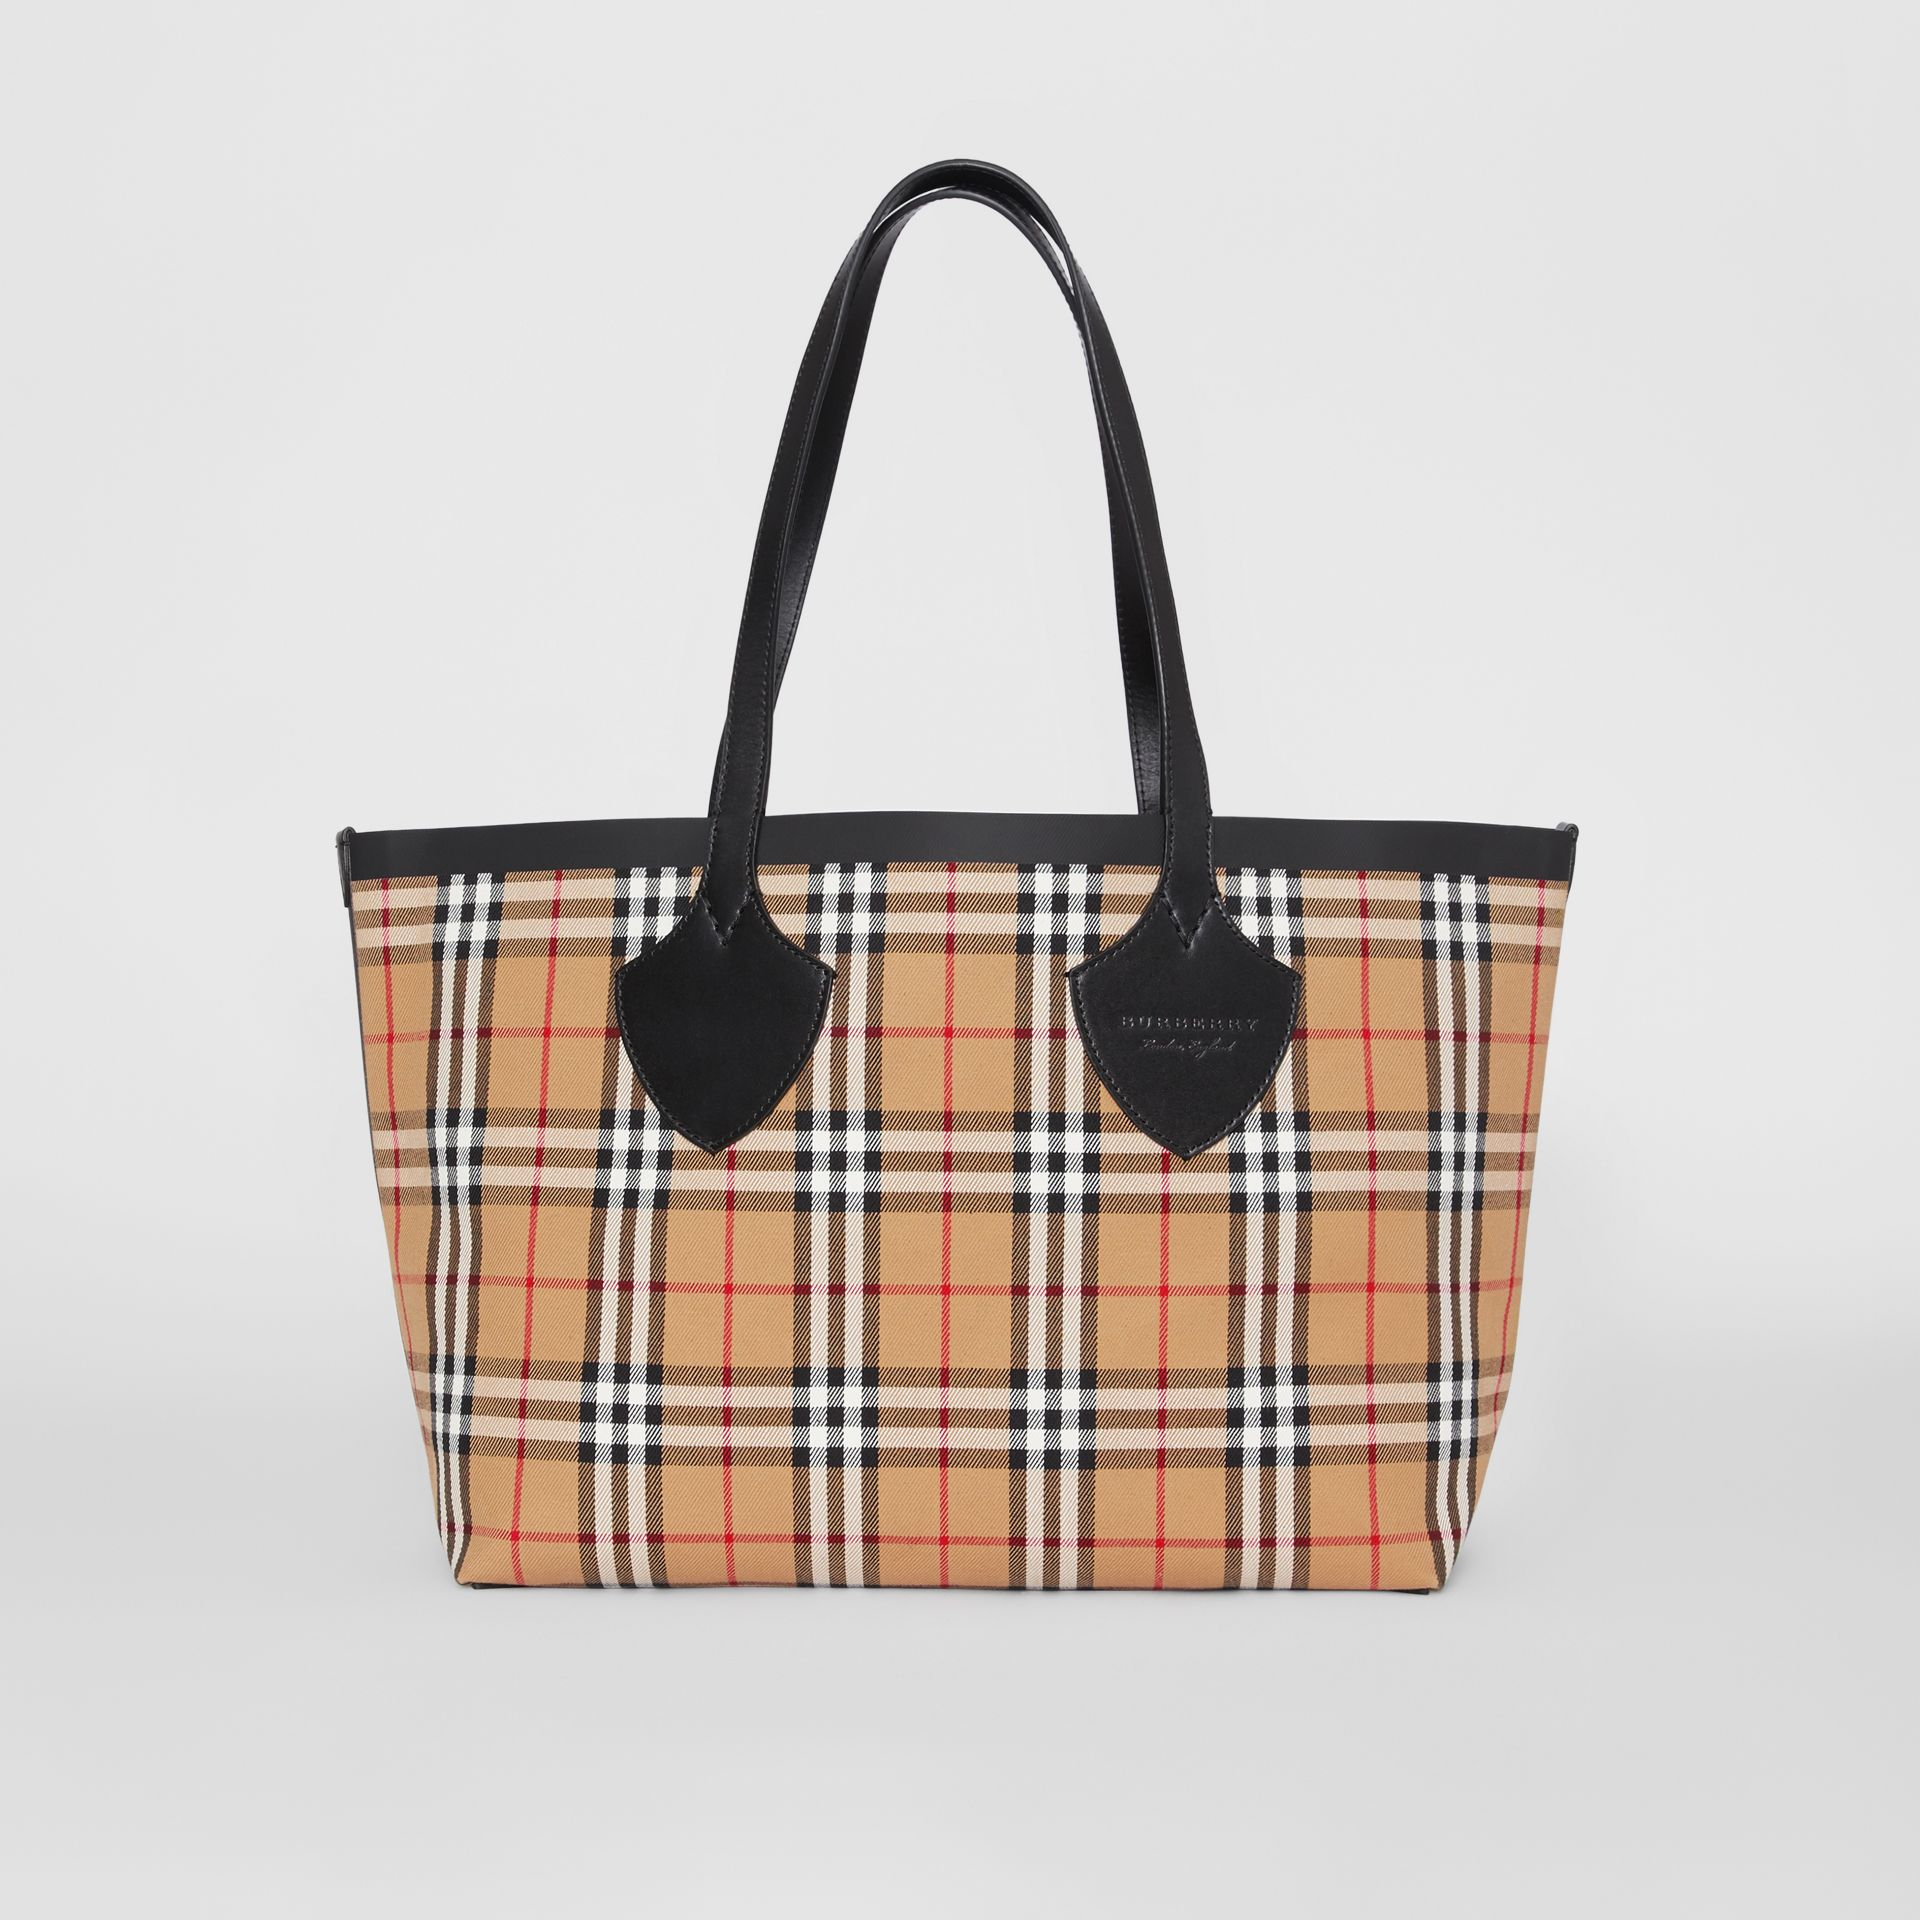 Sac tote The Giant moyen en Vintage check (Jaune Antique/rouge Vif) | Burberry Canada - photo de la galerie 0